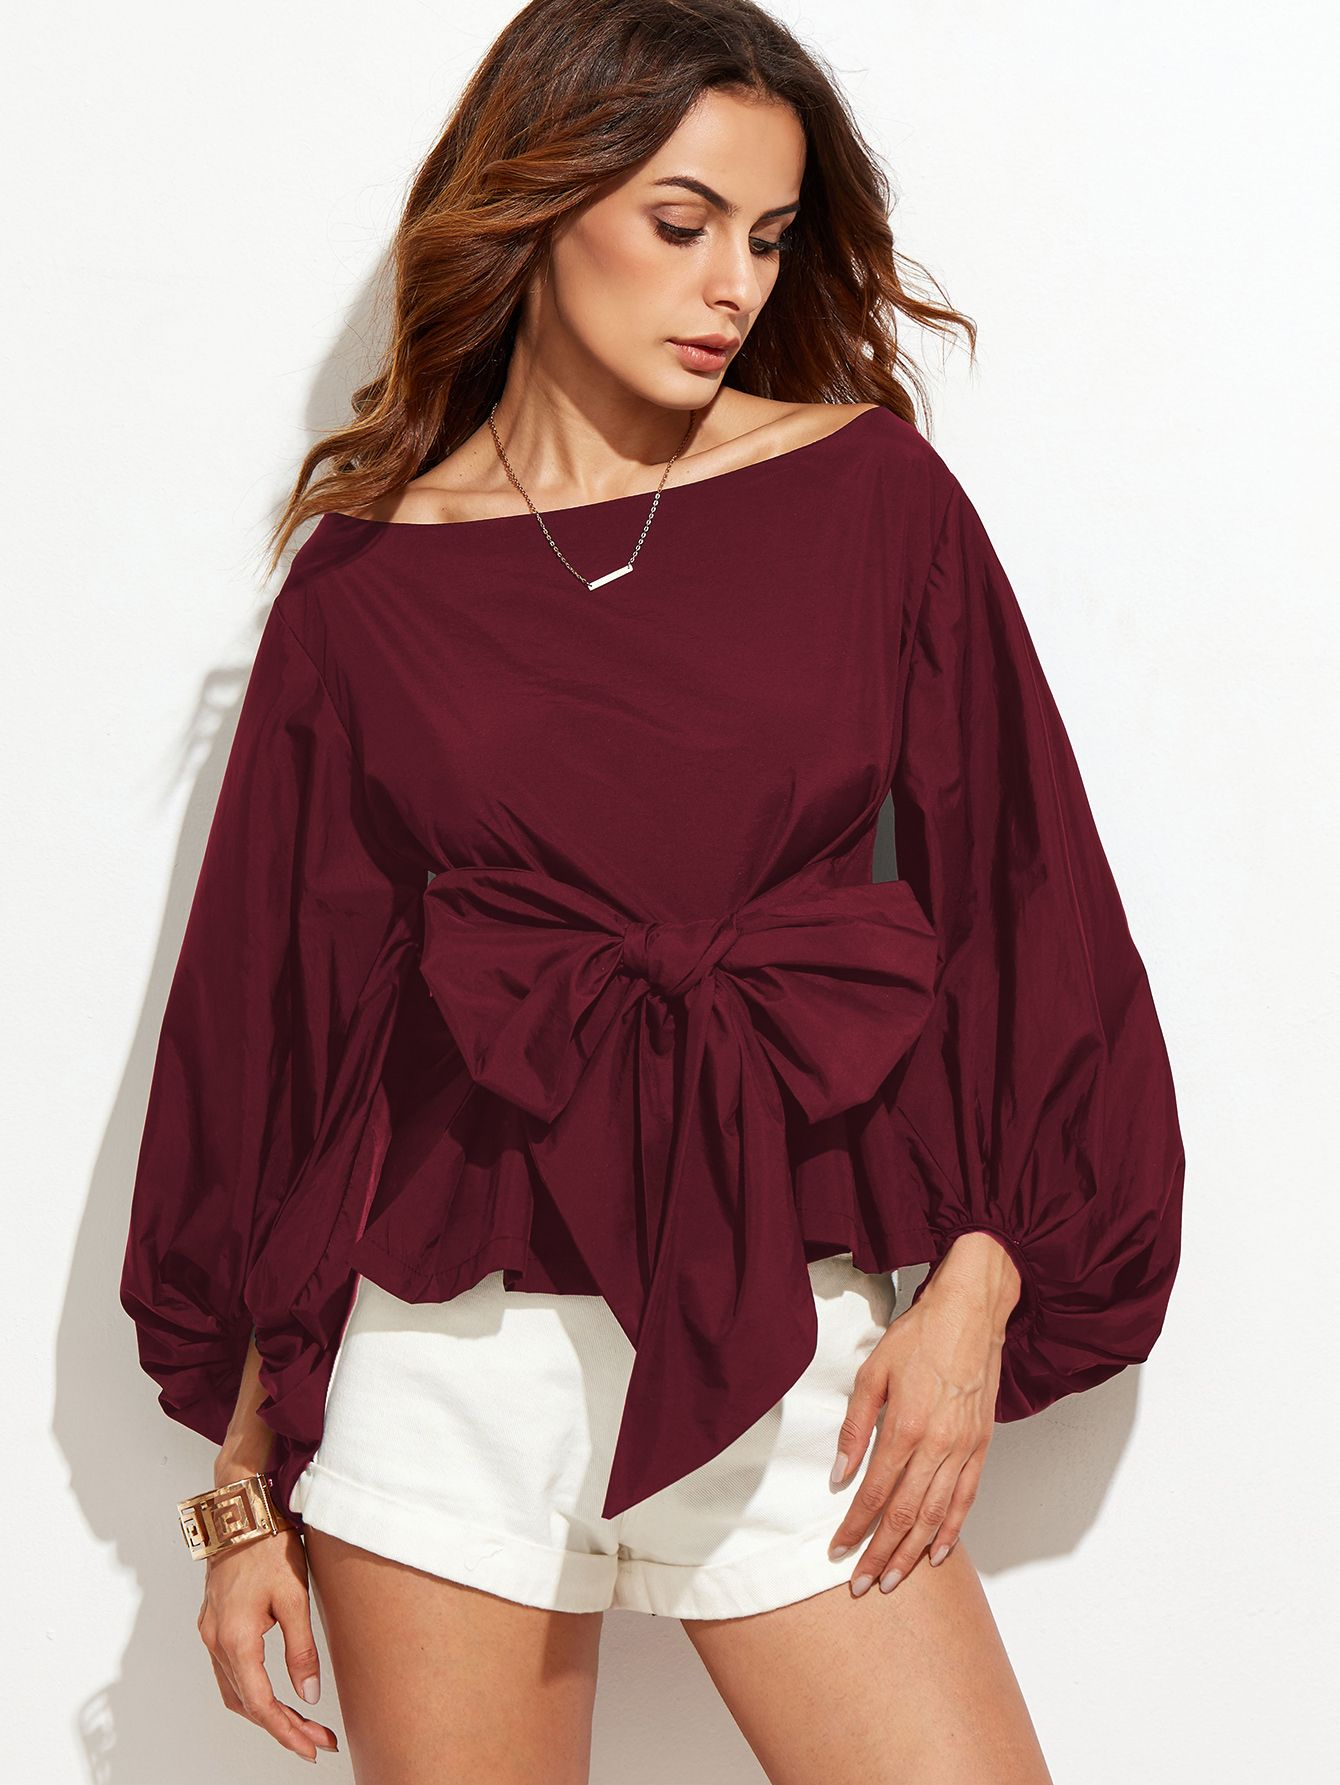 c9f88531a6a7a9 Shop Burgundy Boat Neck Lantern Sleeve Bow Tie Top online. SheIn offers  Burgundy Boat Neck Lantern Sleeve Bow Tie Top   more to fit your  fashionable needs.